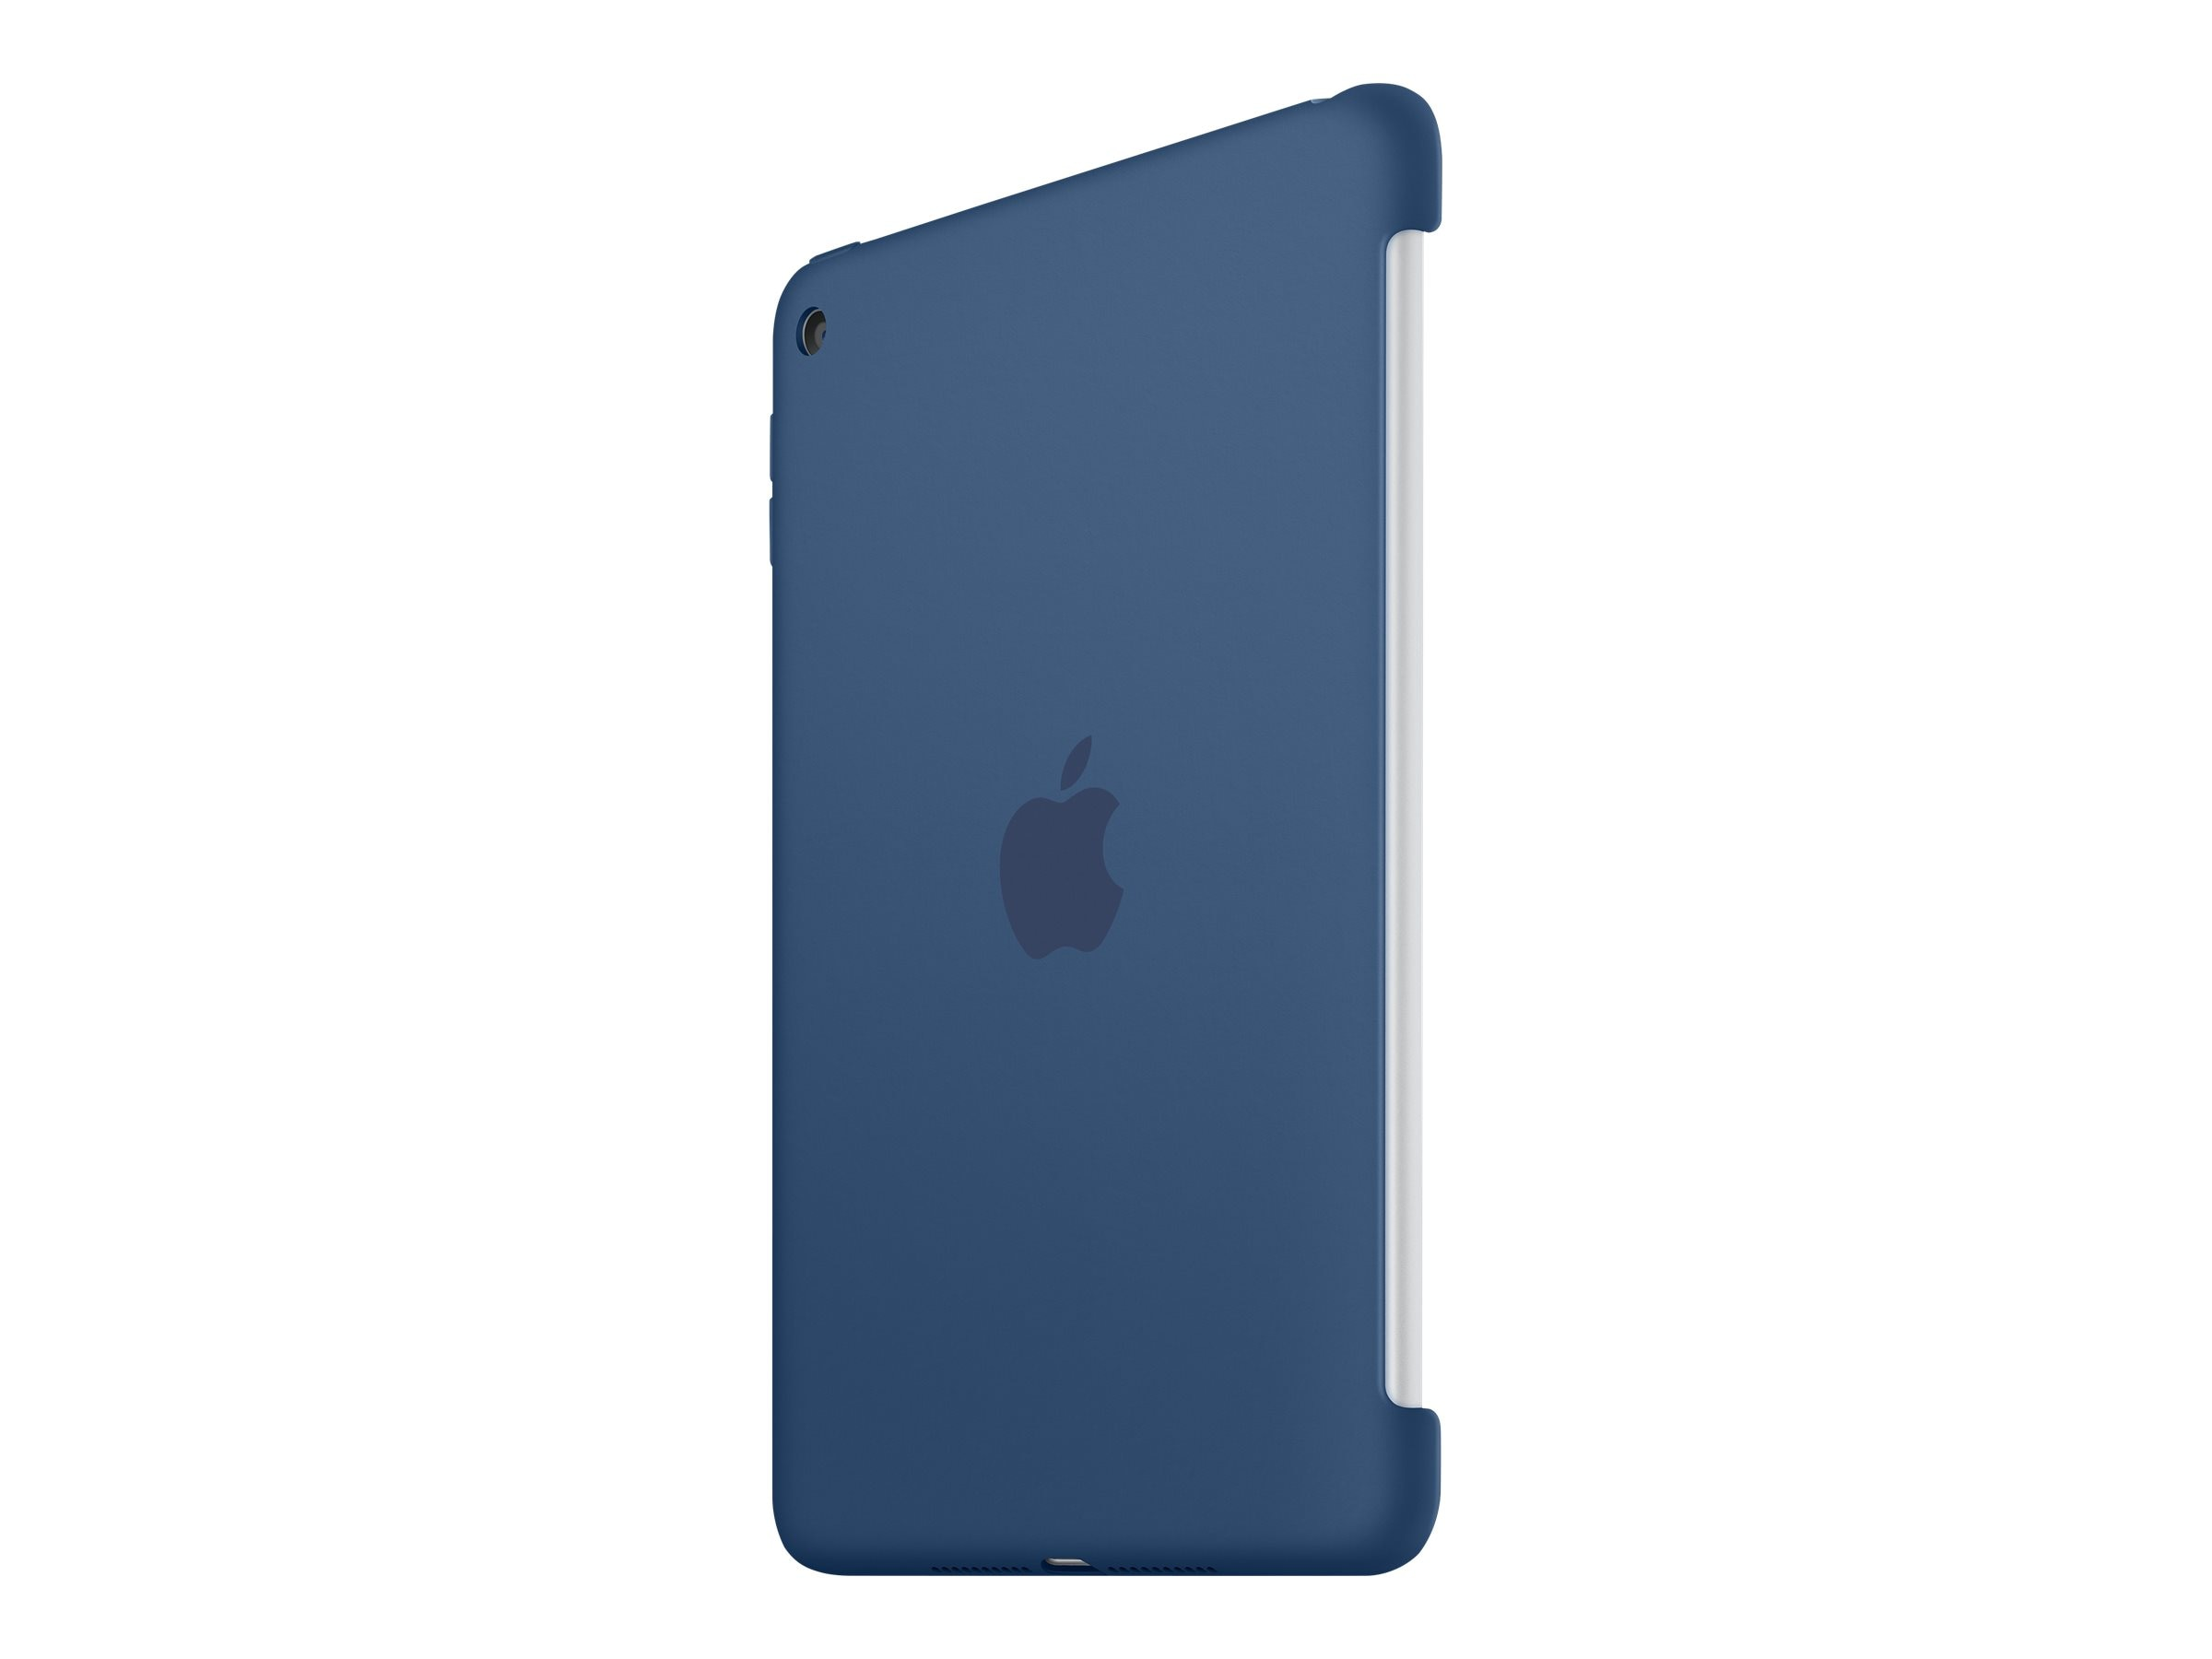 Apple Silicone Case for iPad mini 4, Ocean Blue, MN2N2ZM/A